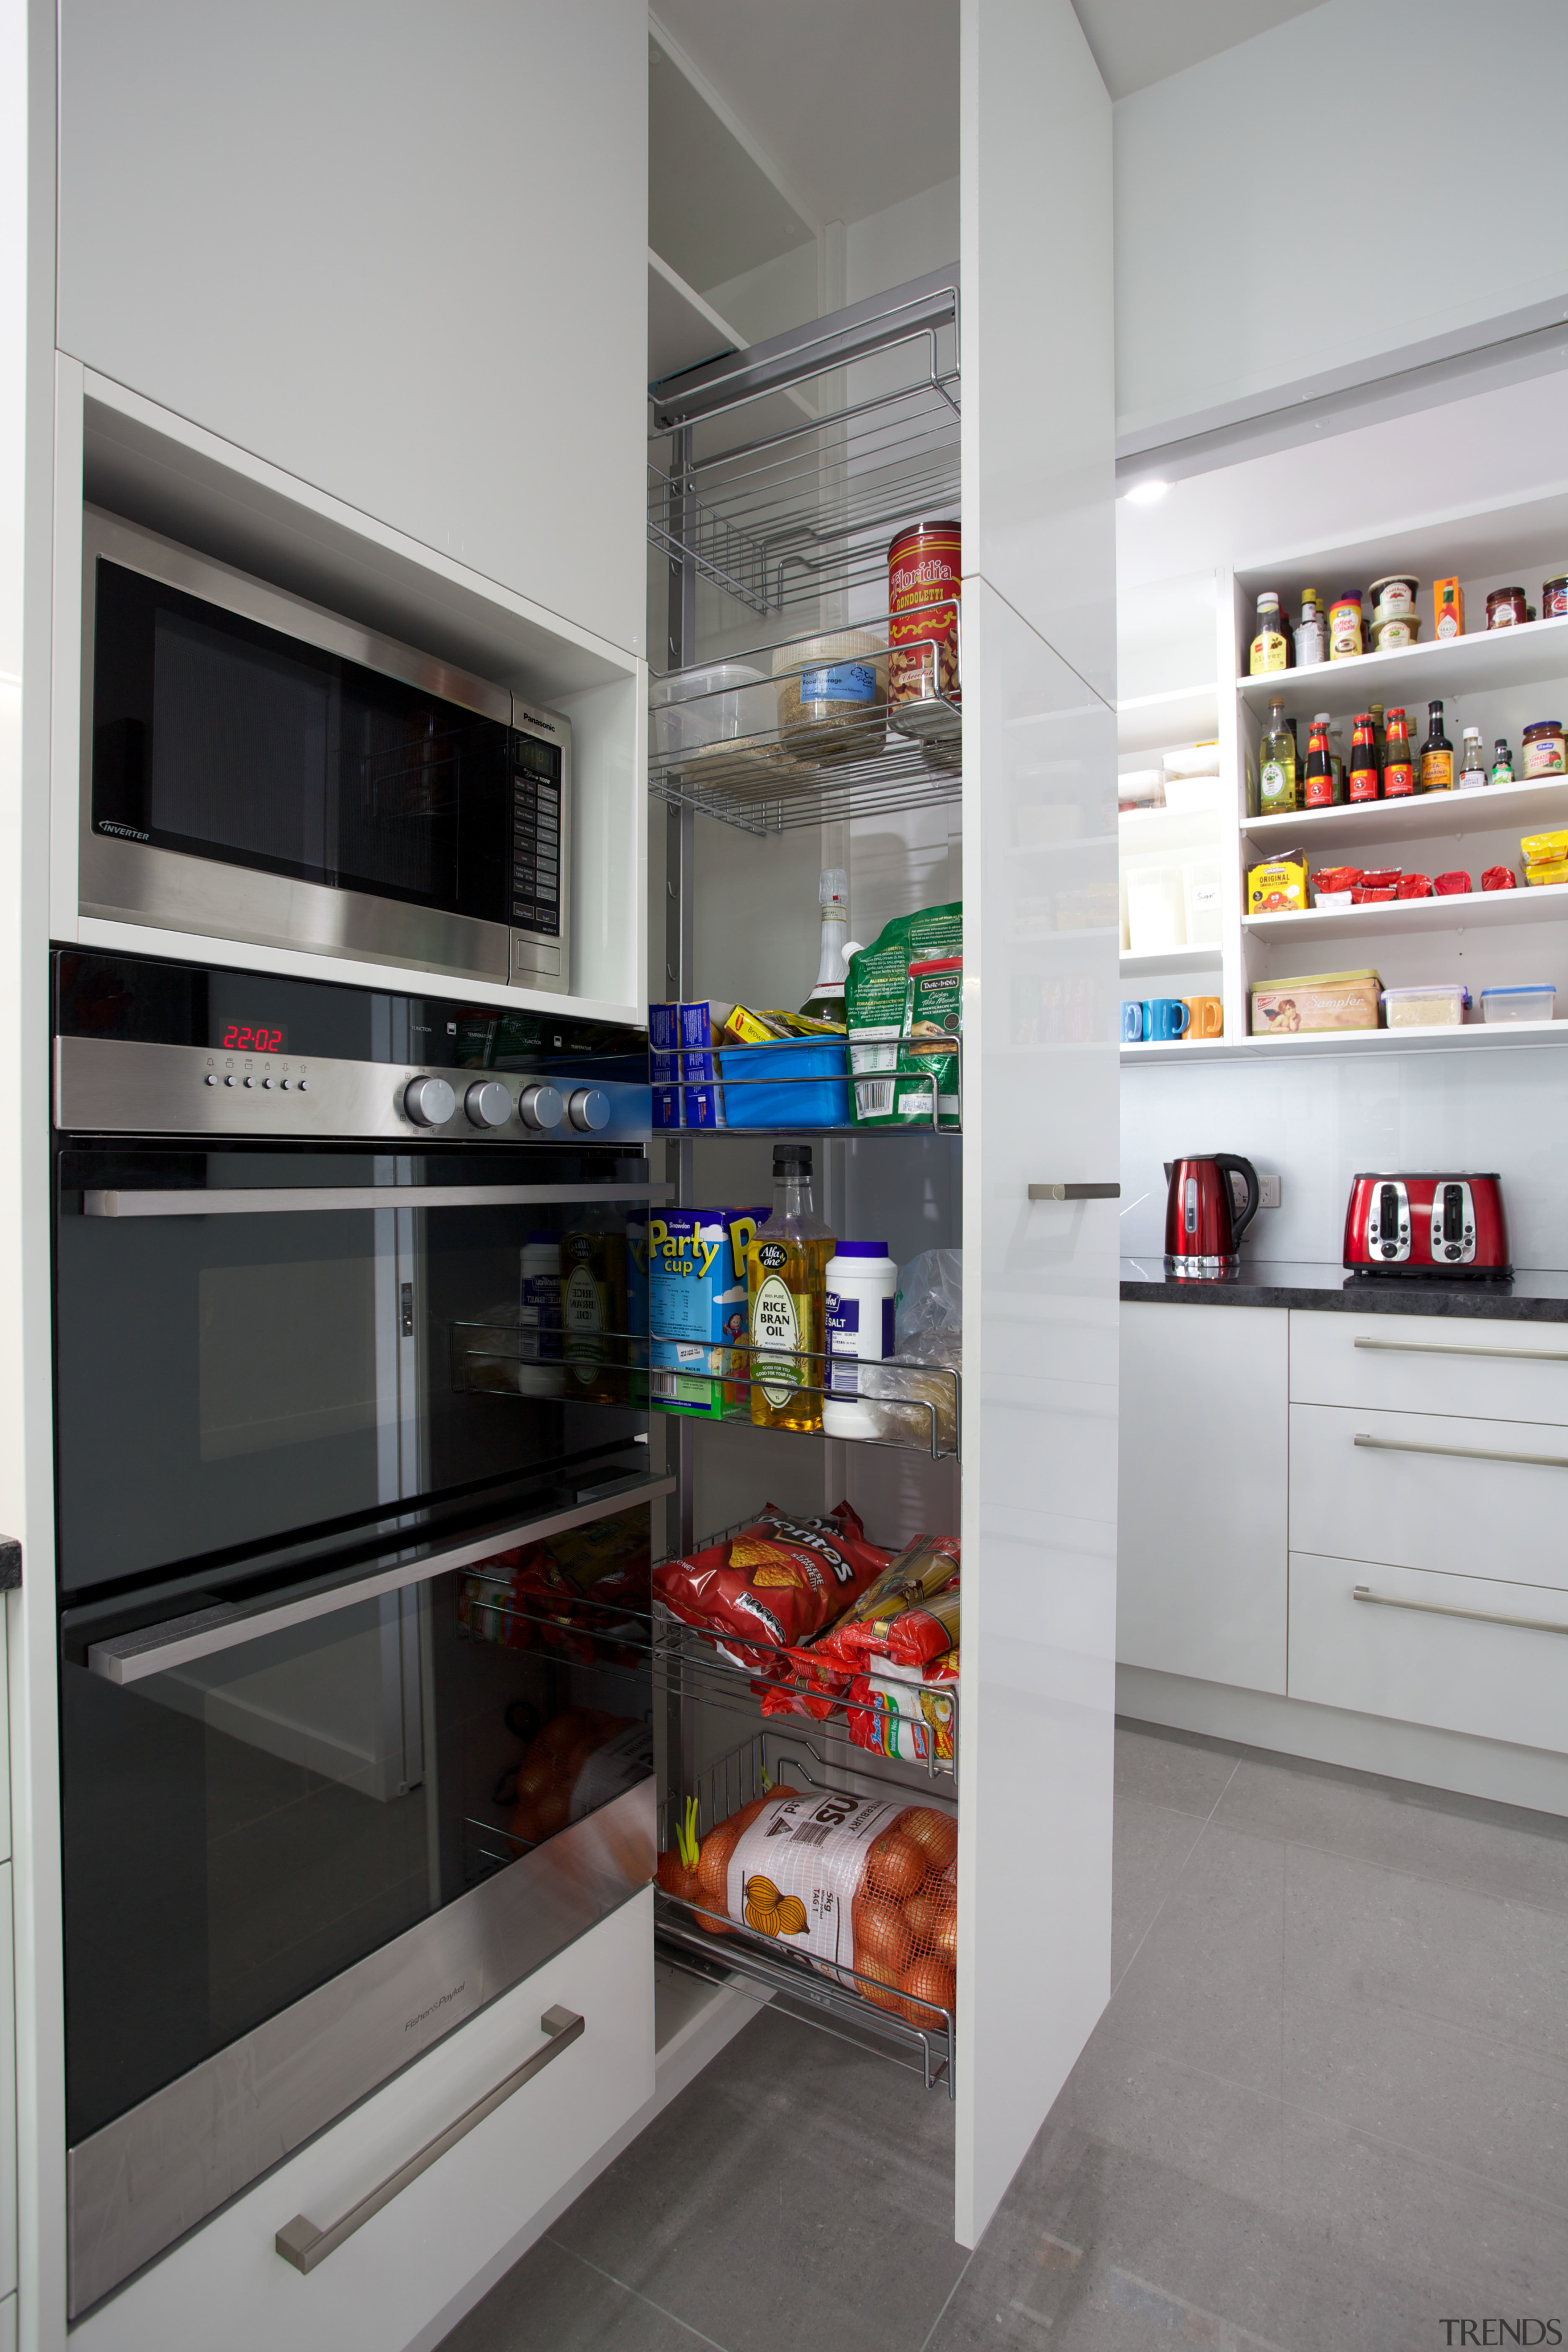 Every kitchen made by The Kitchen Design Company home appliance, kitchen, kitchen appliance, major appliance, pantry, product, refrigerator, gray